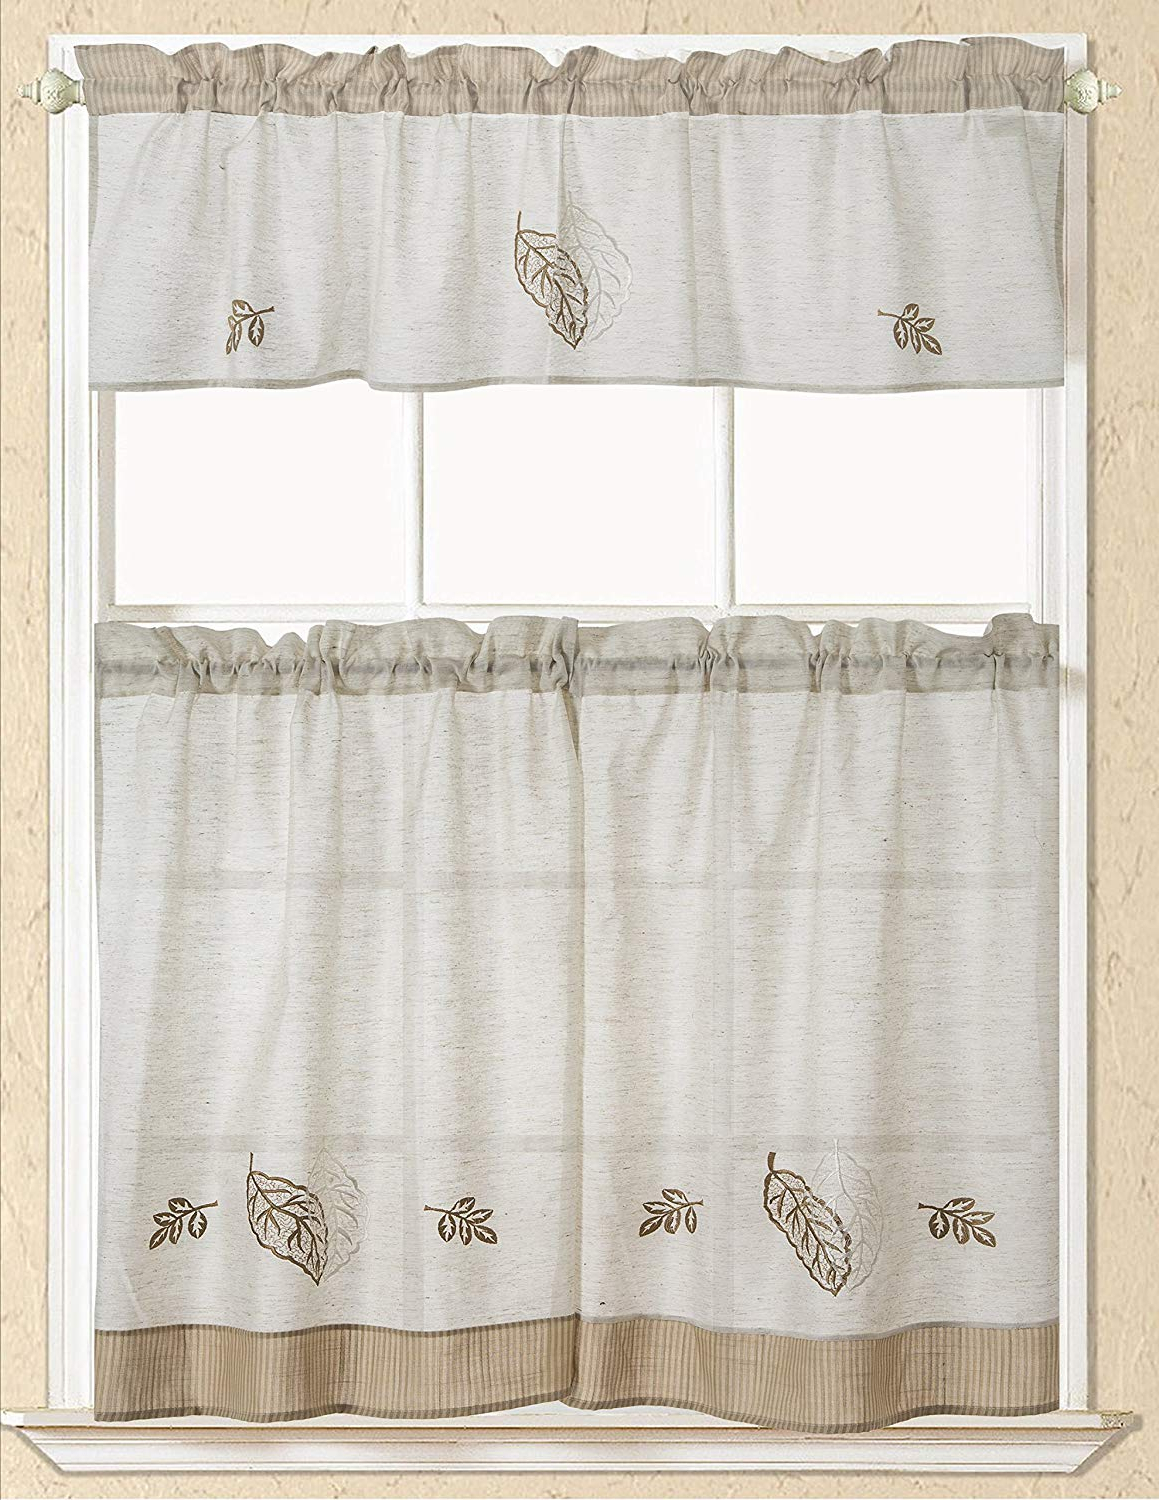 Newest Touch Of Spring 24 Inch Tier Pairs Throughout Rt Designers Collection Rt Designers Spring Rustic Leaf Embroidered Kitchen Curtain, 1 Straight Valance 58 Inch X 15 Inch & 2 Tiers 30 Inch X 36 Inch, (View 9 of 20)